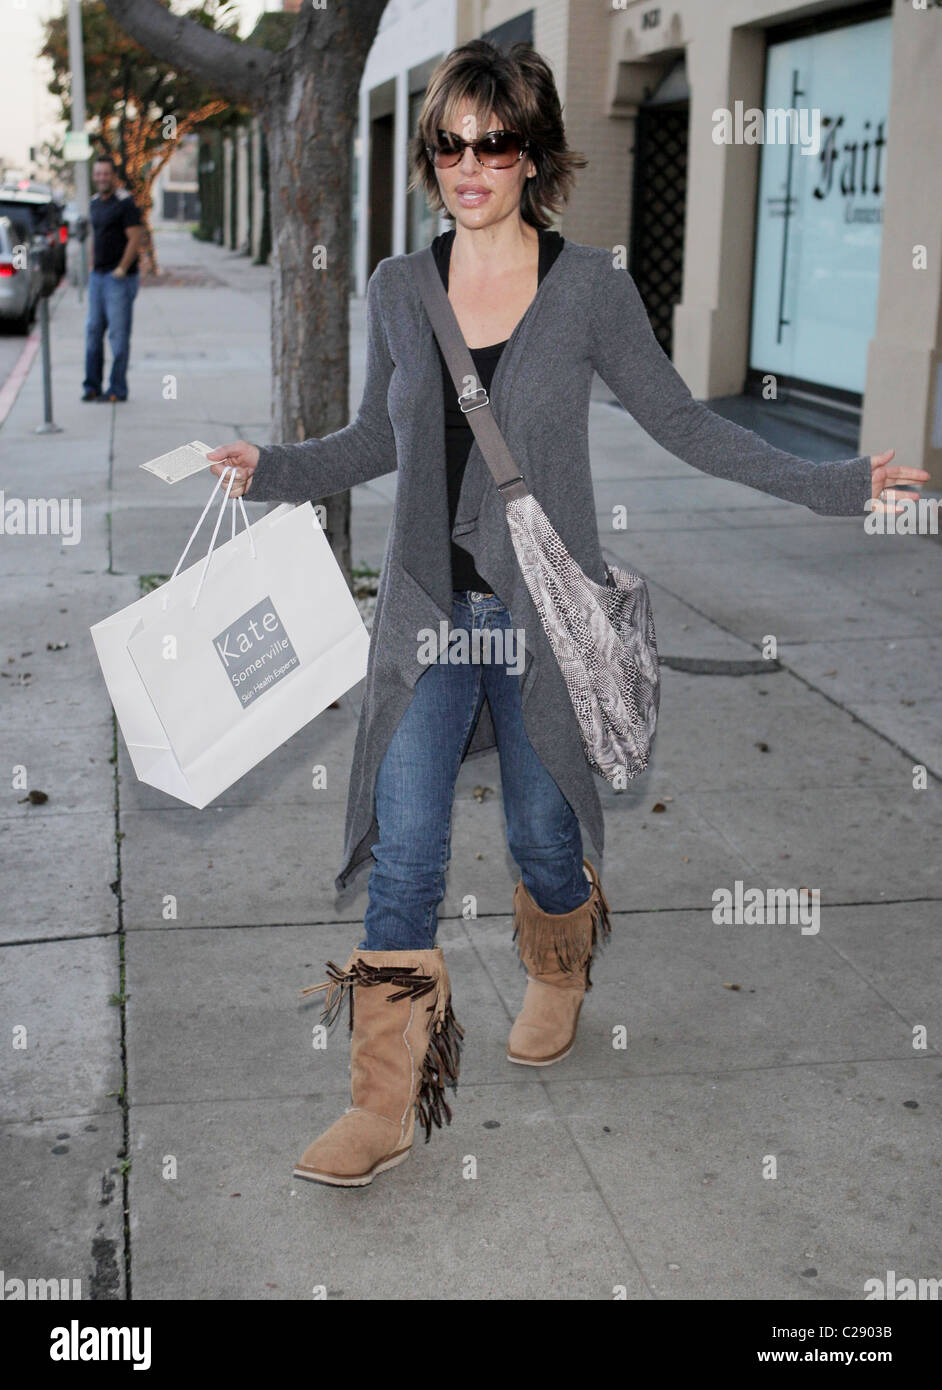 Lisa Rinna leaving the Kate Somerville Skin Clinic in West